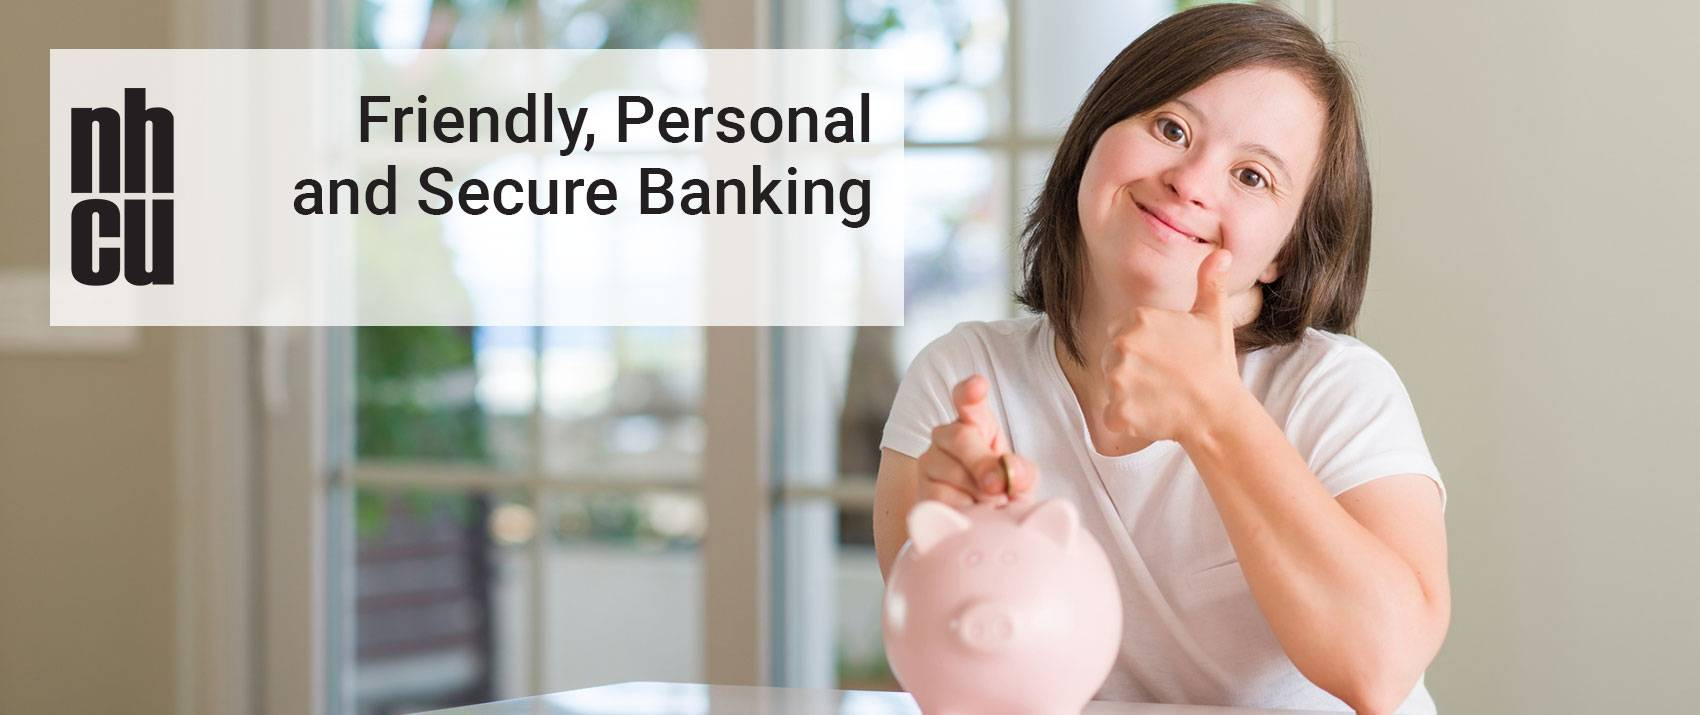 Friendly Personal and Secure Banking